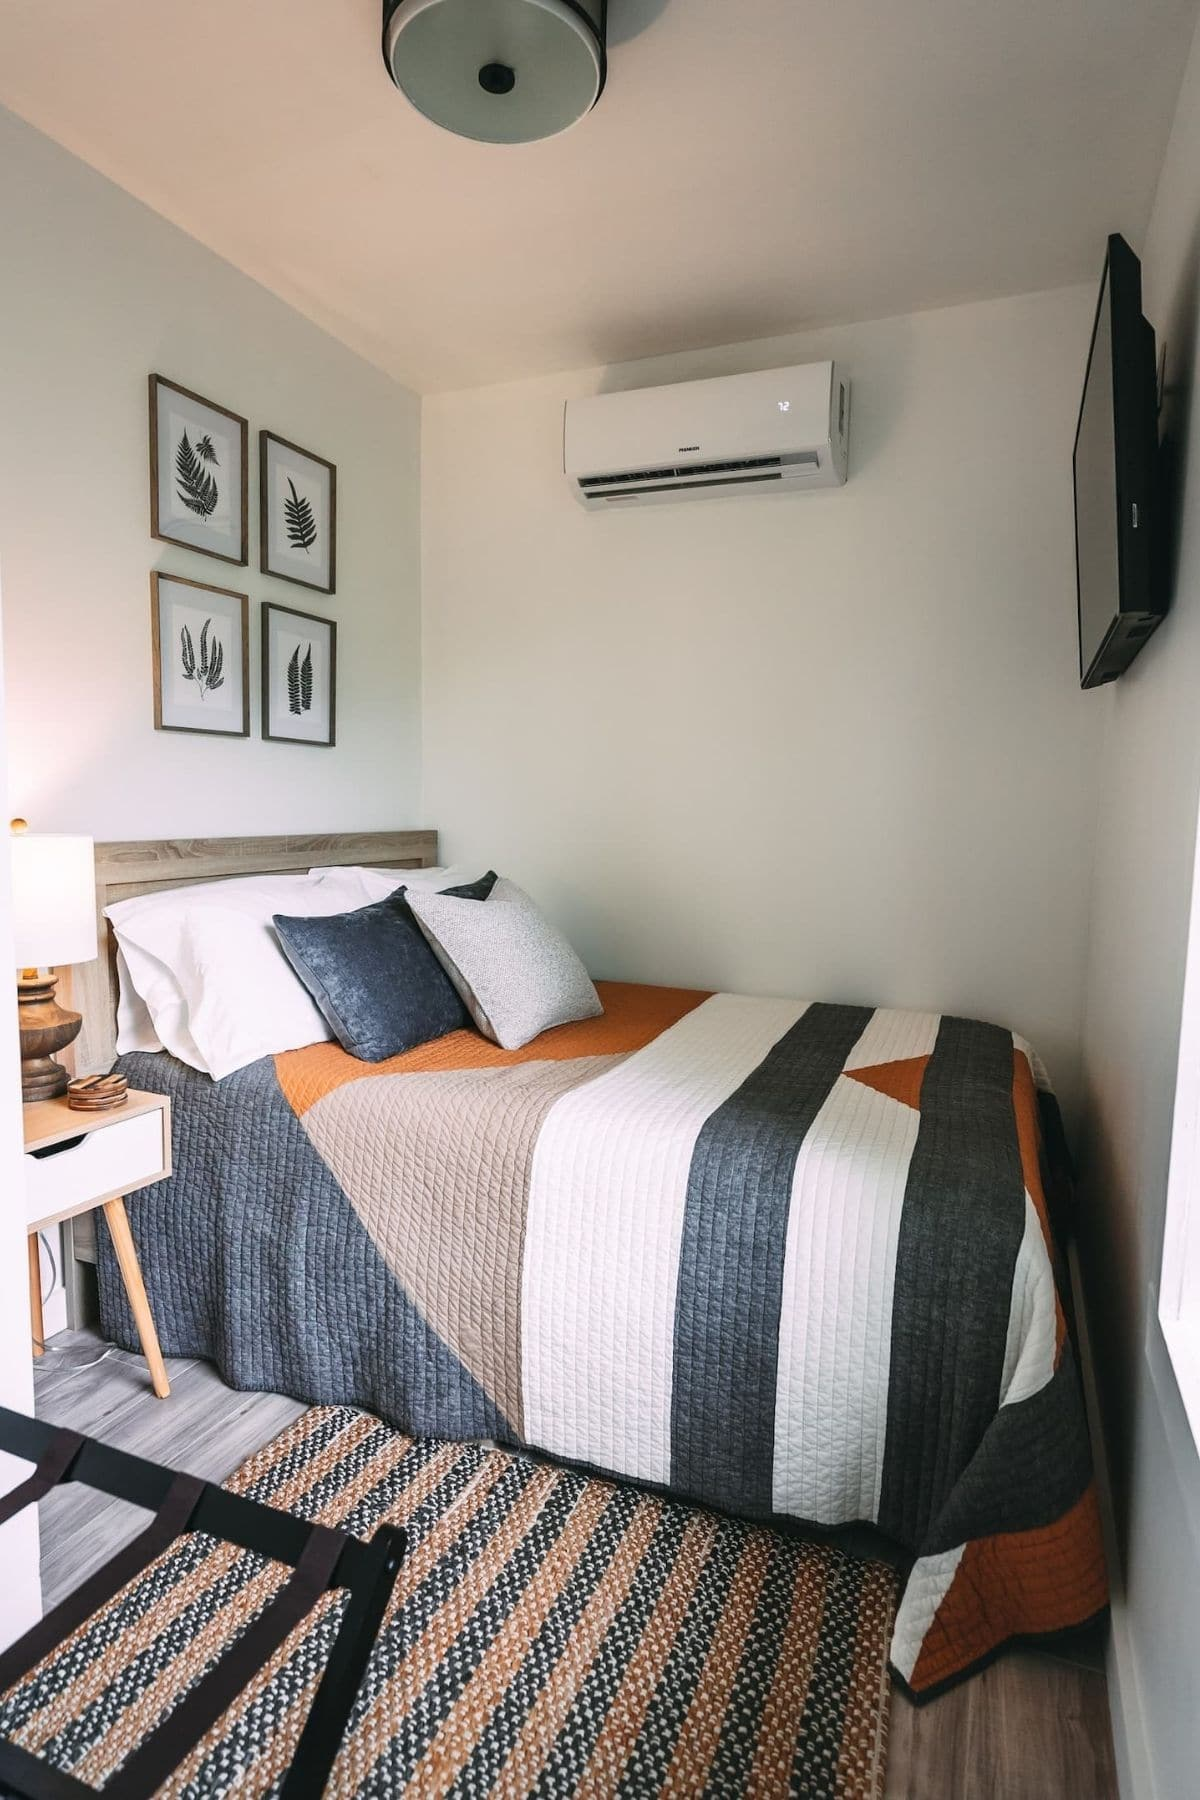 Striped bedding on bed against end of home in tiny bedroom